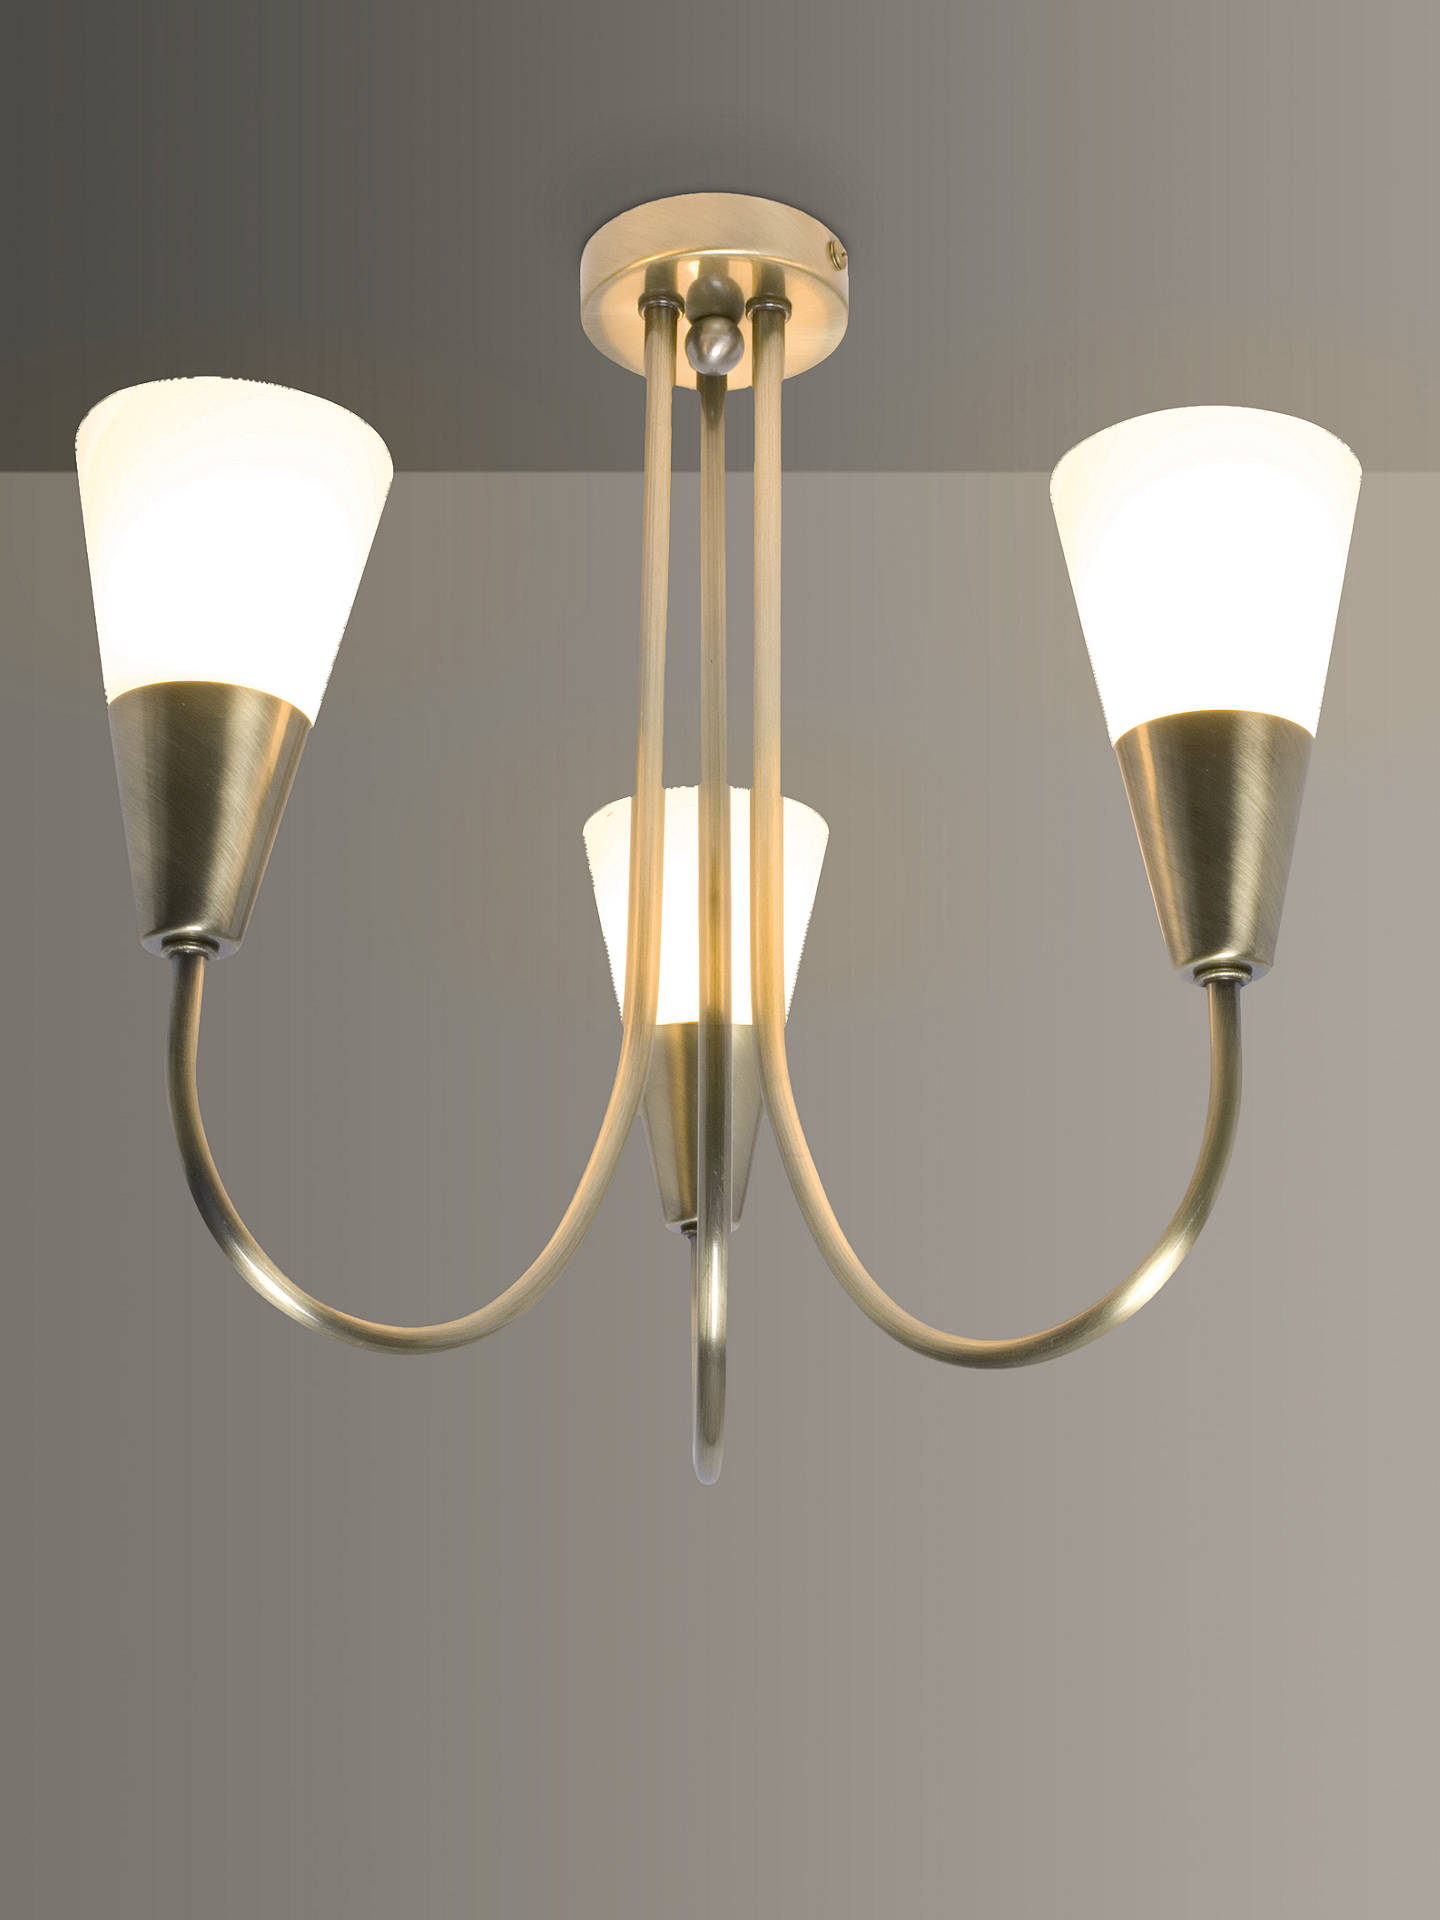 John Lewis & Partners Lulu 3 Arm Ceiling Light, Brass